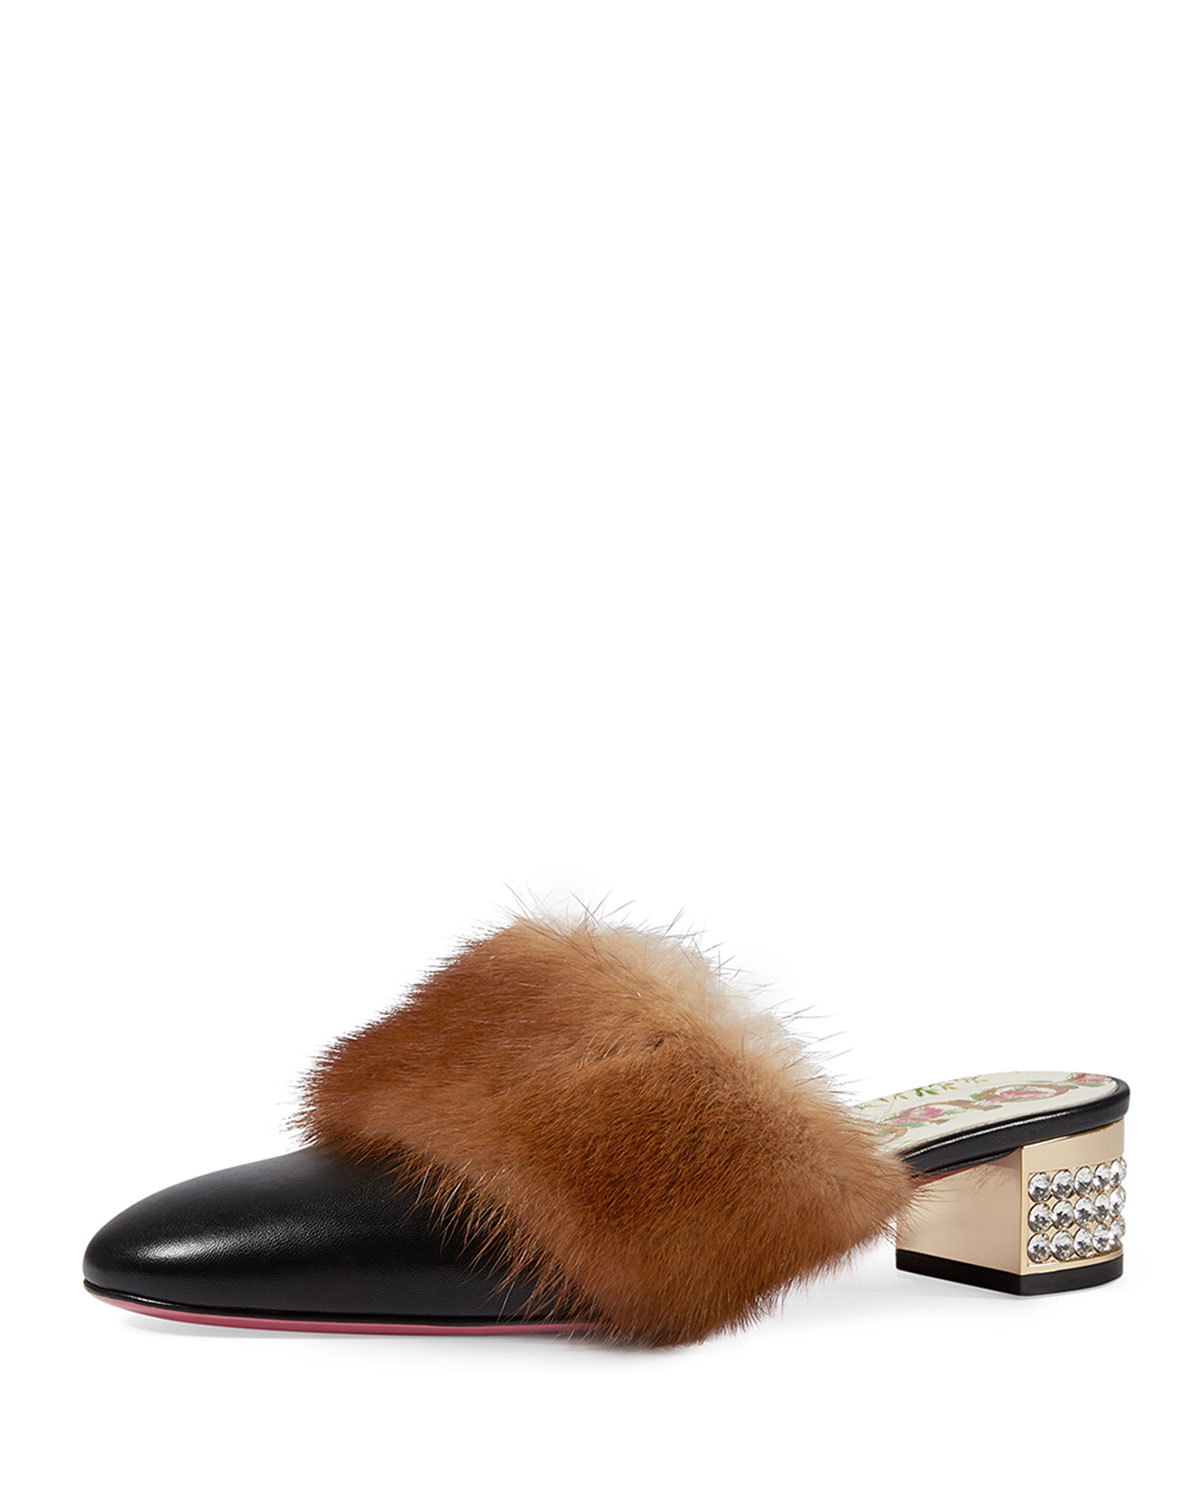 8d7831d63bf Gucci 35mm Candy Leather Mule With Fur Trim